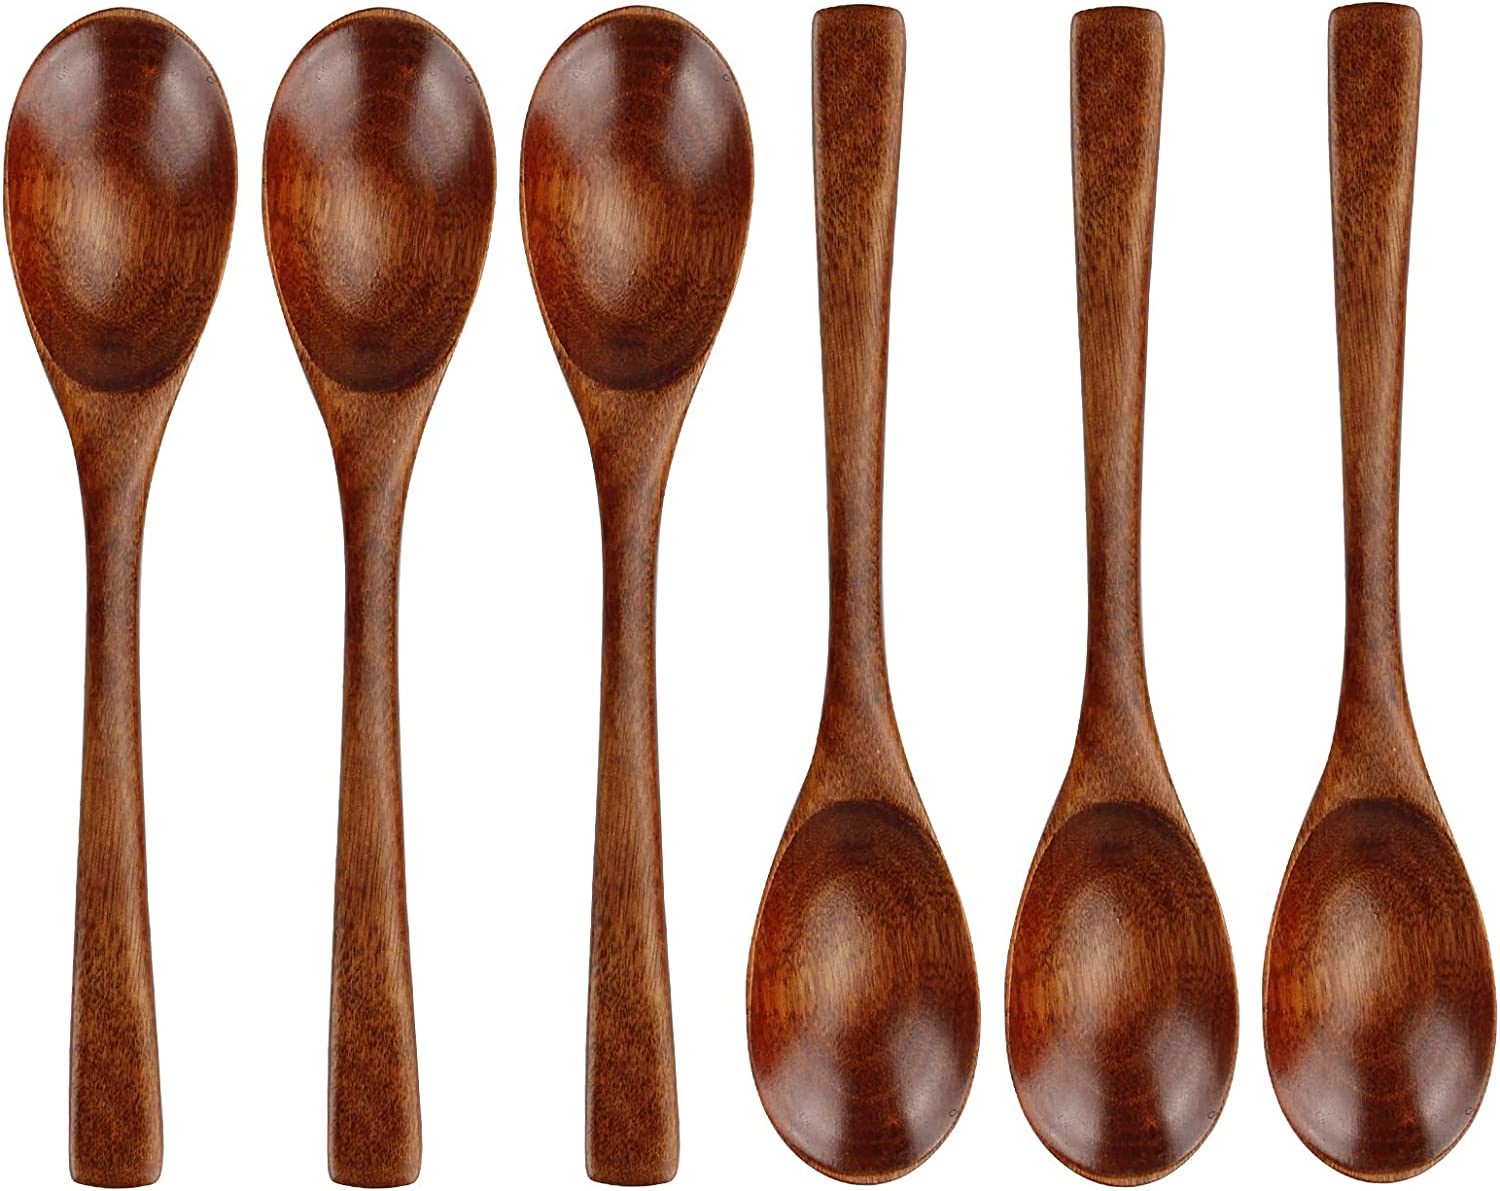 Special price 6 Pcs Wooden Coffee Spoon 8 Eating Mixing Complete Free Shipping Inch Stirrin for